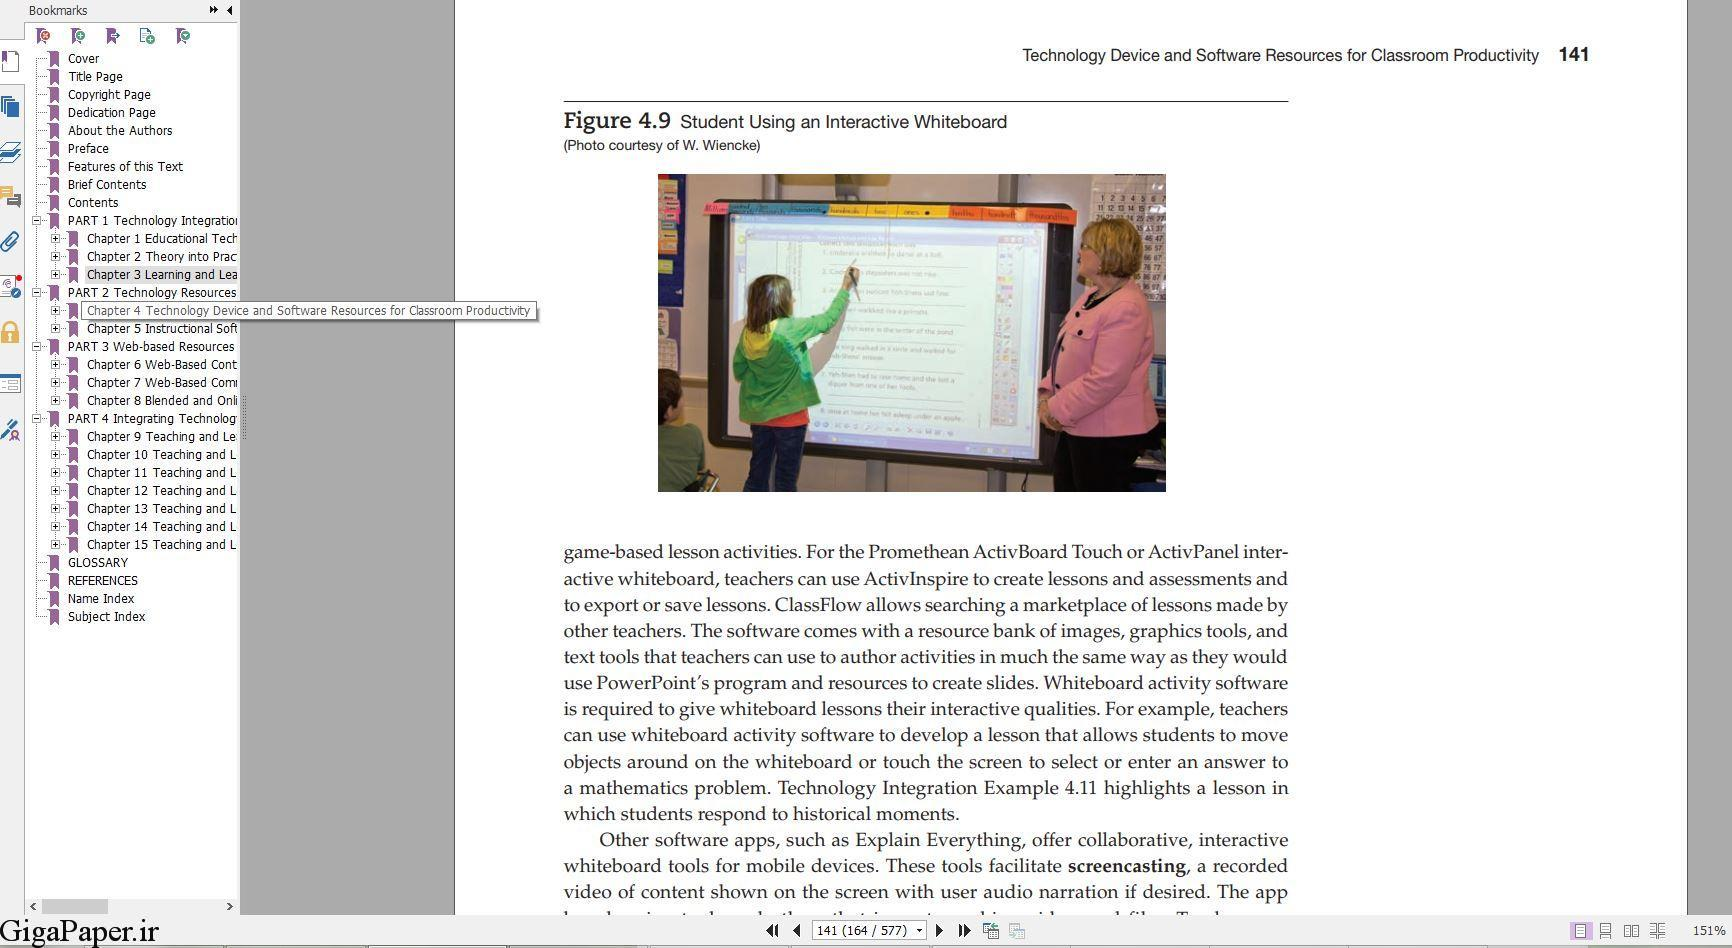 دریافت ایبوک Integrating educational technology into teaching: transforming learning across disciplines, 8e دانلود پی دی اف کتاب شابک 0134746090 - Free Download integrating educational technology into teaching 8th edition ebook integrating educational technology into teaching 8th Edition ebook download PDF گیگاپیپر